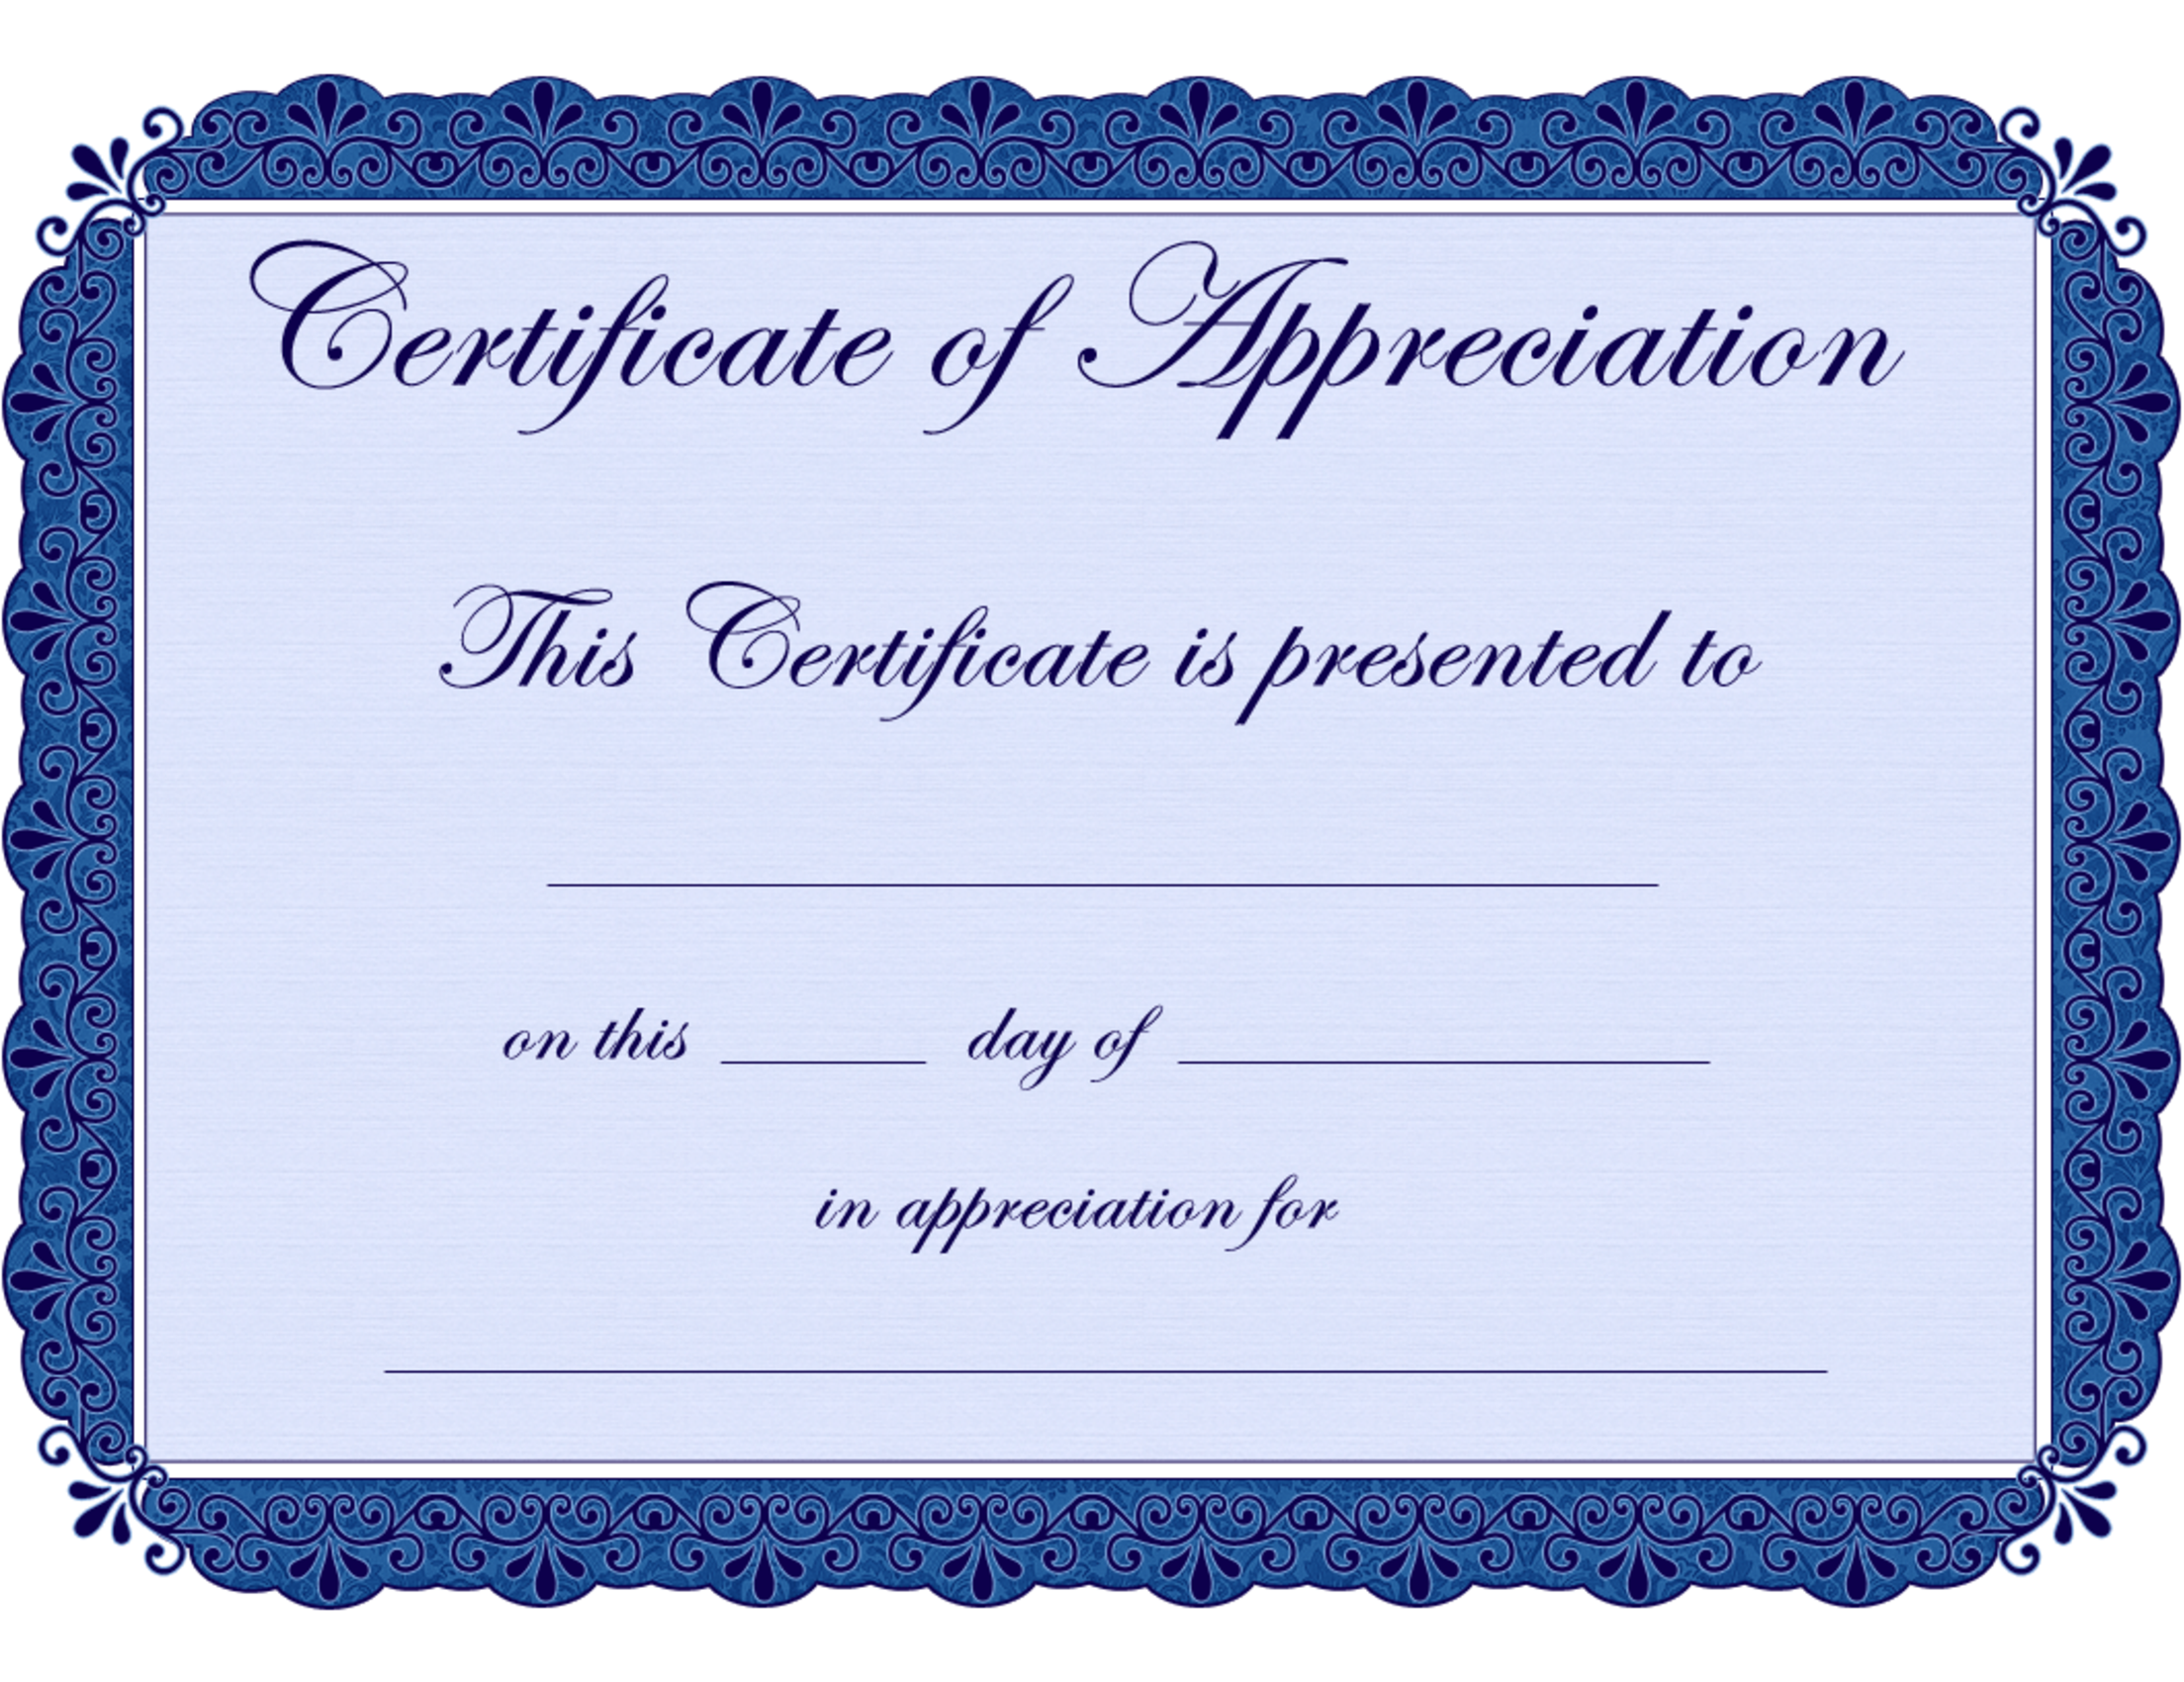 Free printable certificates certificate of appreciation free printable certificates certificate of appreciation certificate 1betcityfo Image collections